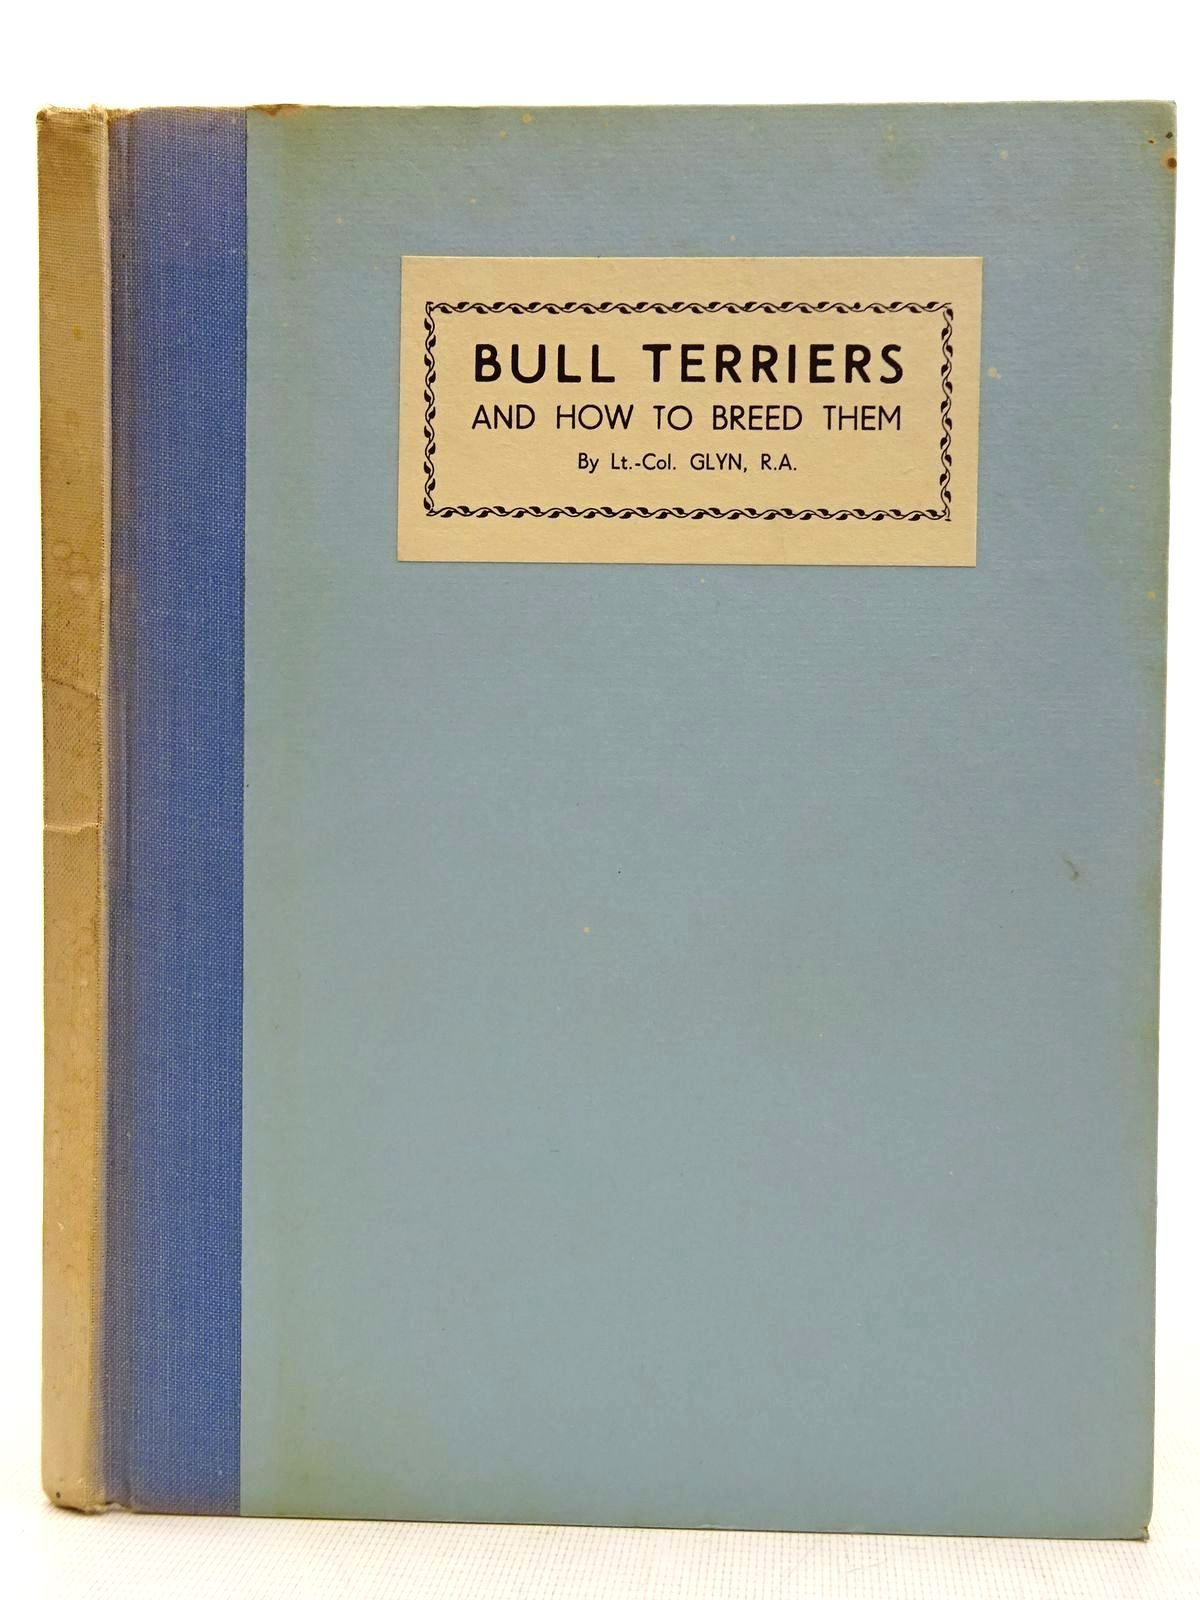 Photo of BULL TERRIERS AND HOW TO BREED THEM written by Glyn, R.H. published by Hall The Publisher (STOCK CODE: 2128421)  for sale by Stella & Rose's Books